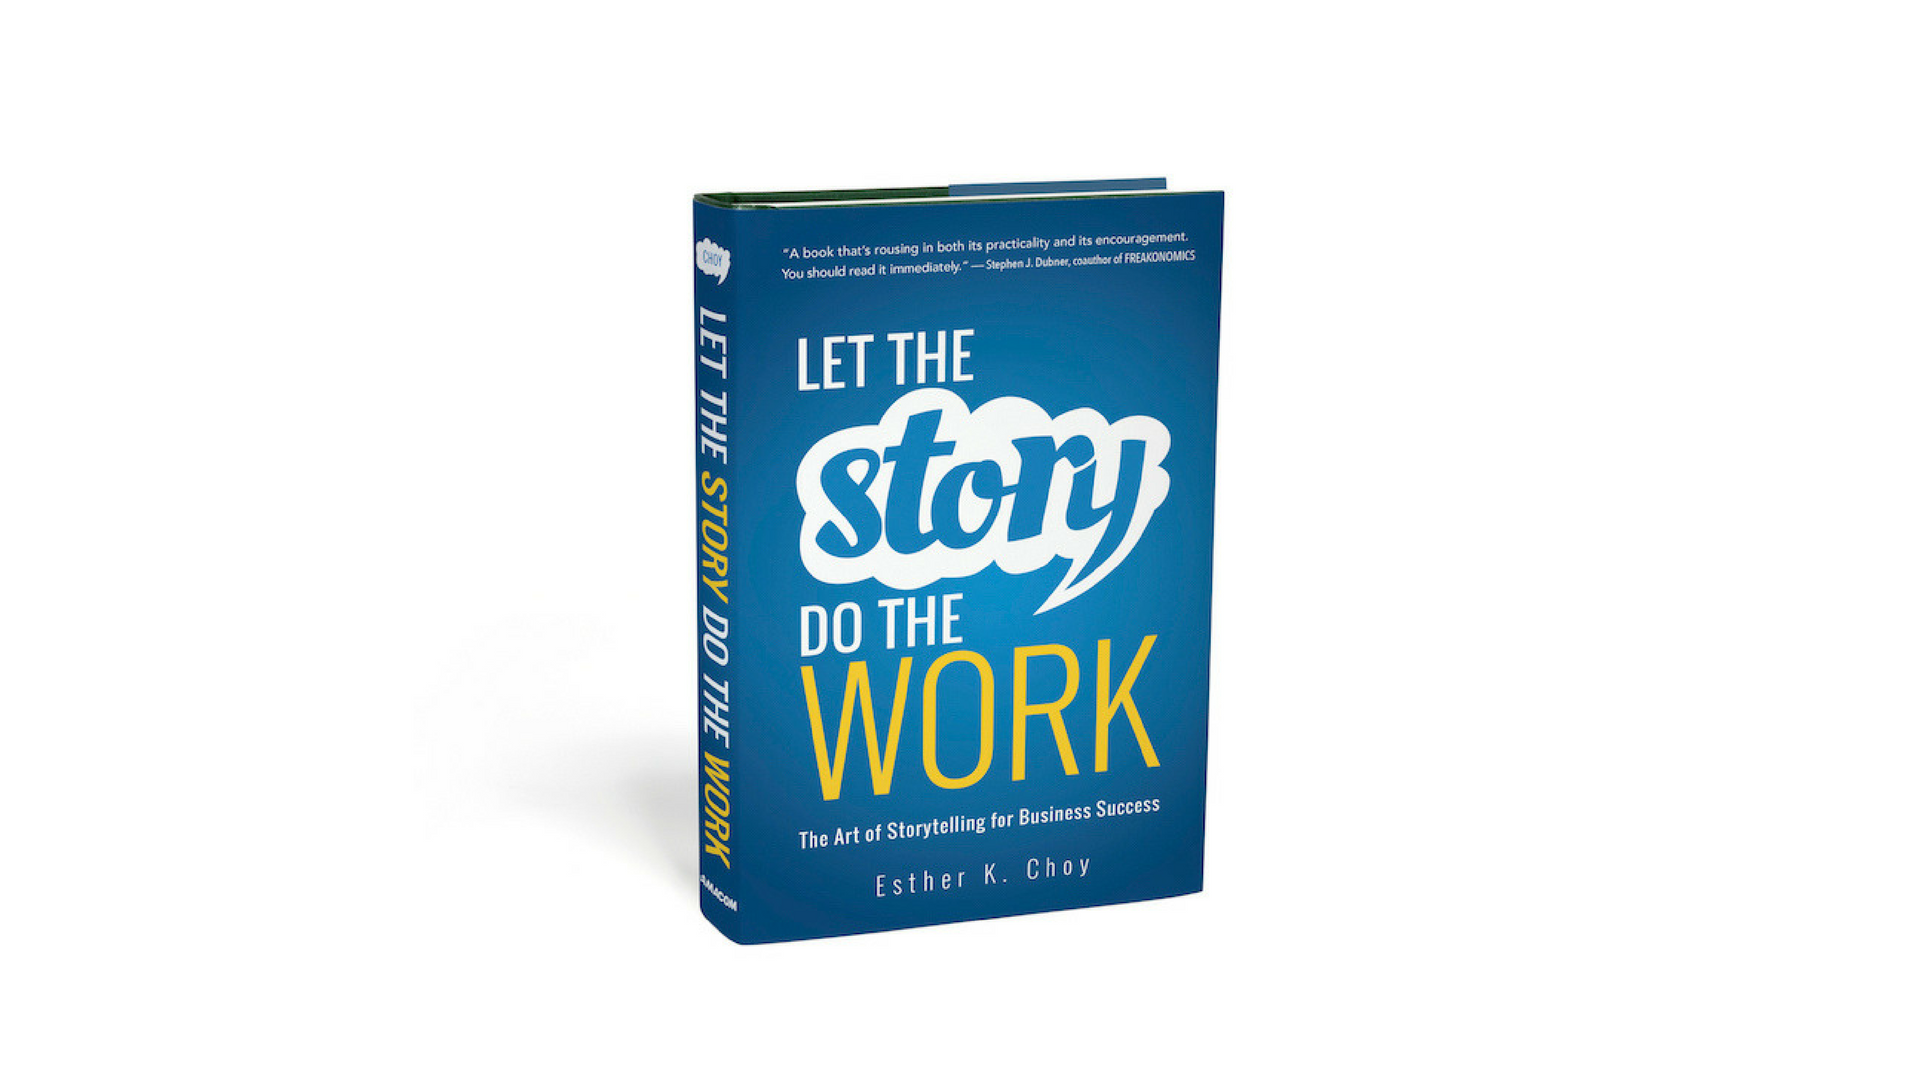 Practice storytelling with our guidebook